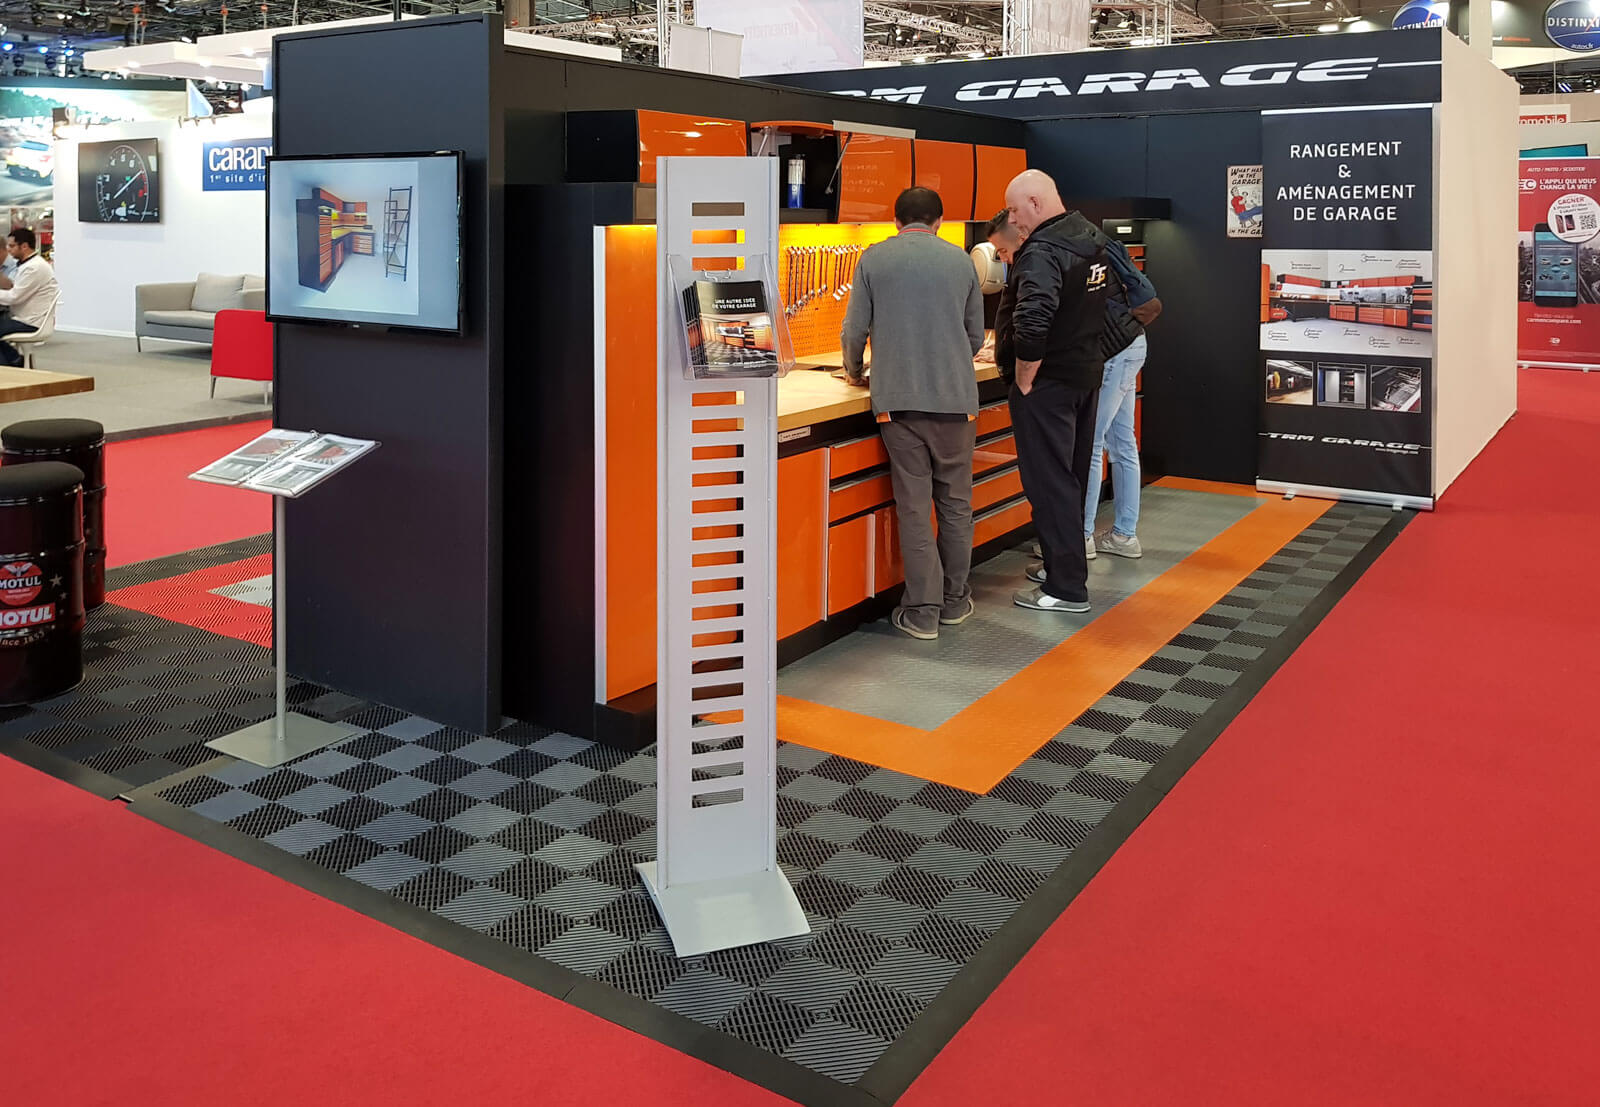 Another view of the garage floor tile display at Mondial Paris.